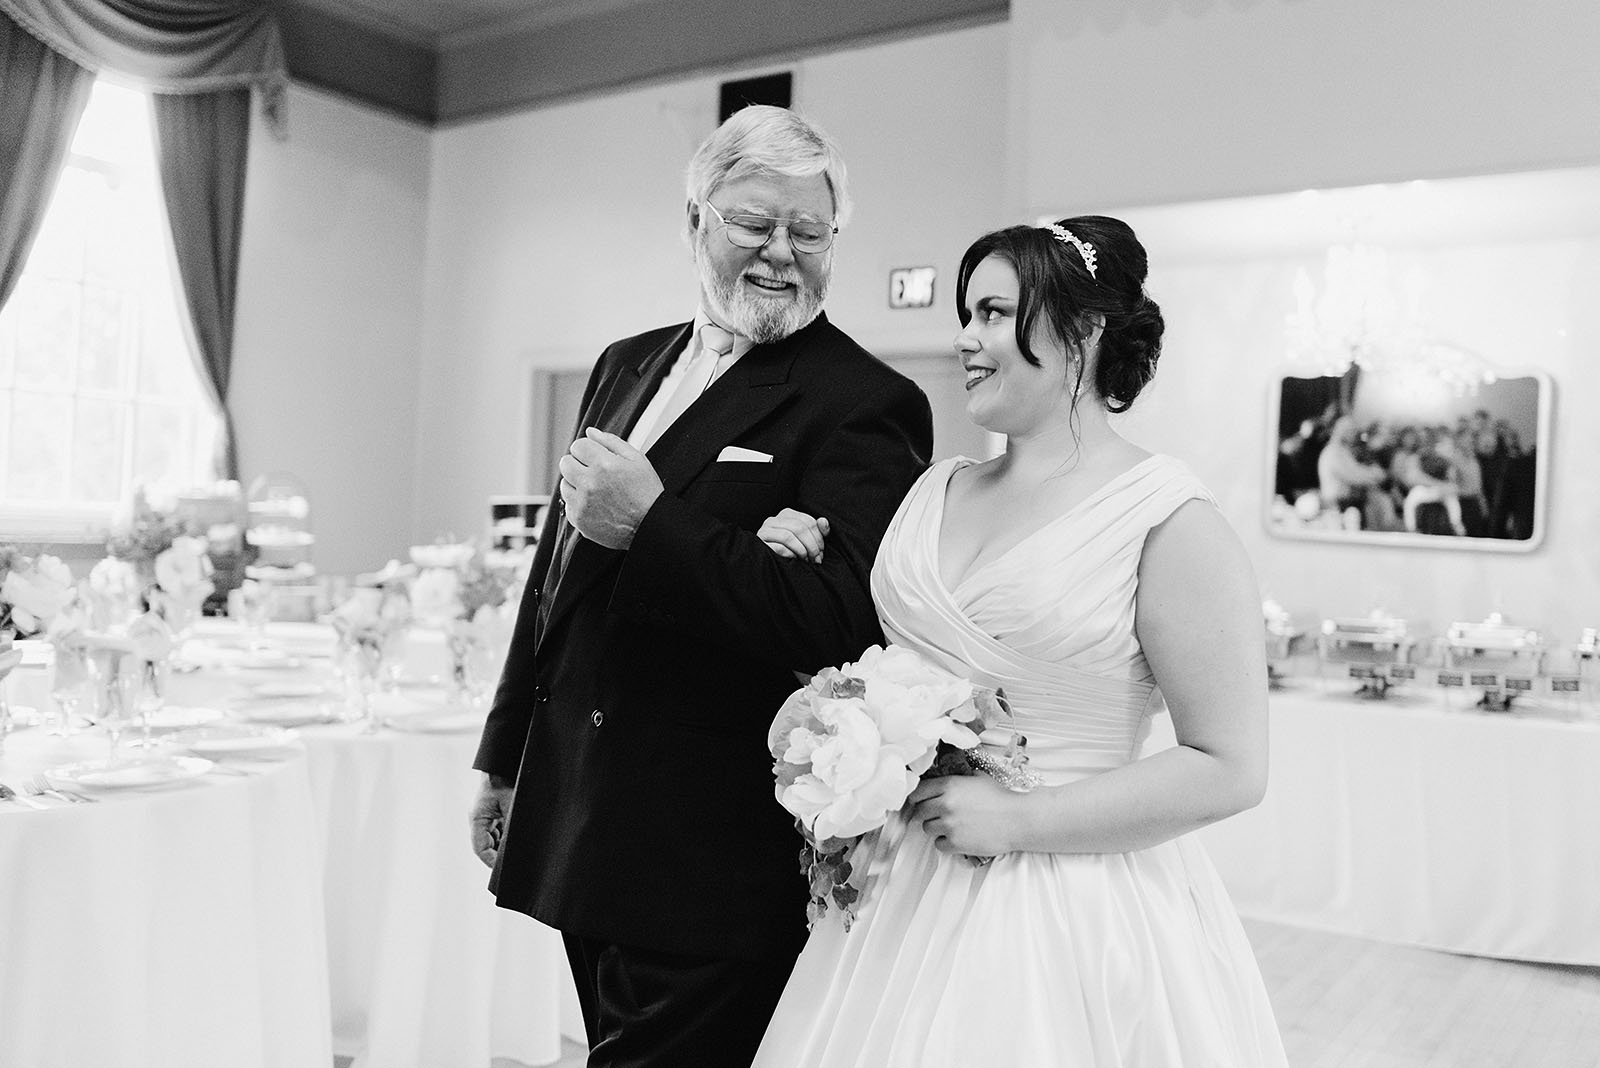 Father of the bride smiling while walking down the aisle - Polaris Hall Wedding